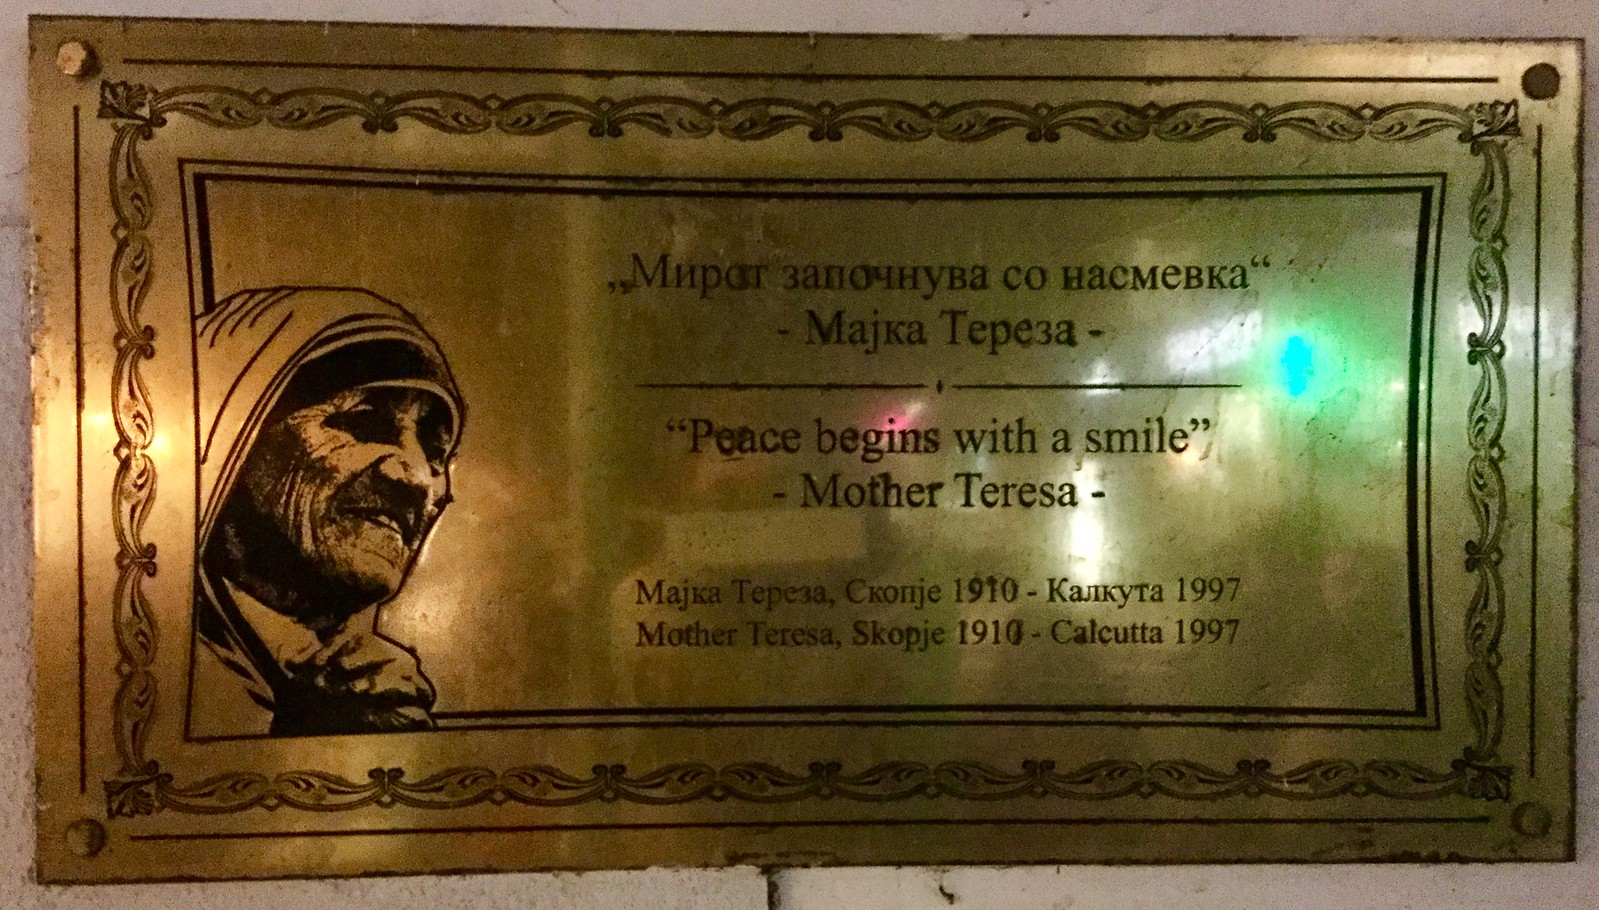 201705 - Balkans - Mother Theresa Plaque Skopje - 39 of 66 - Skopje - Sopishte, May 29, 2017